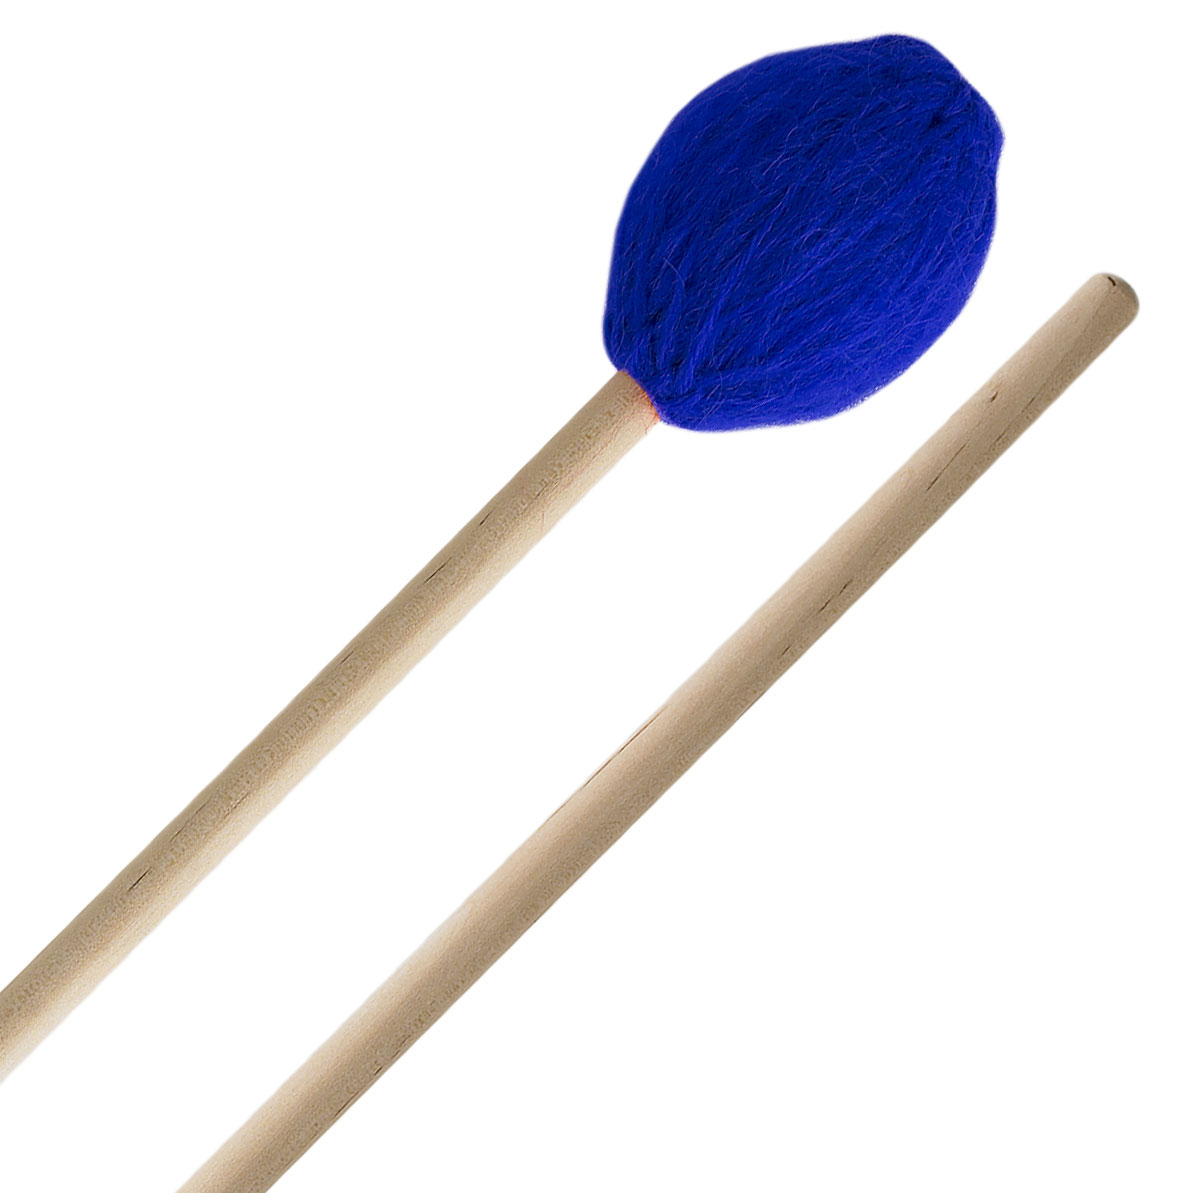 Innovative Percussion She-e Wu Signature Medium Soft Marimba Mallets